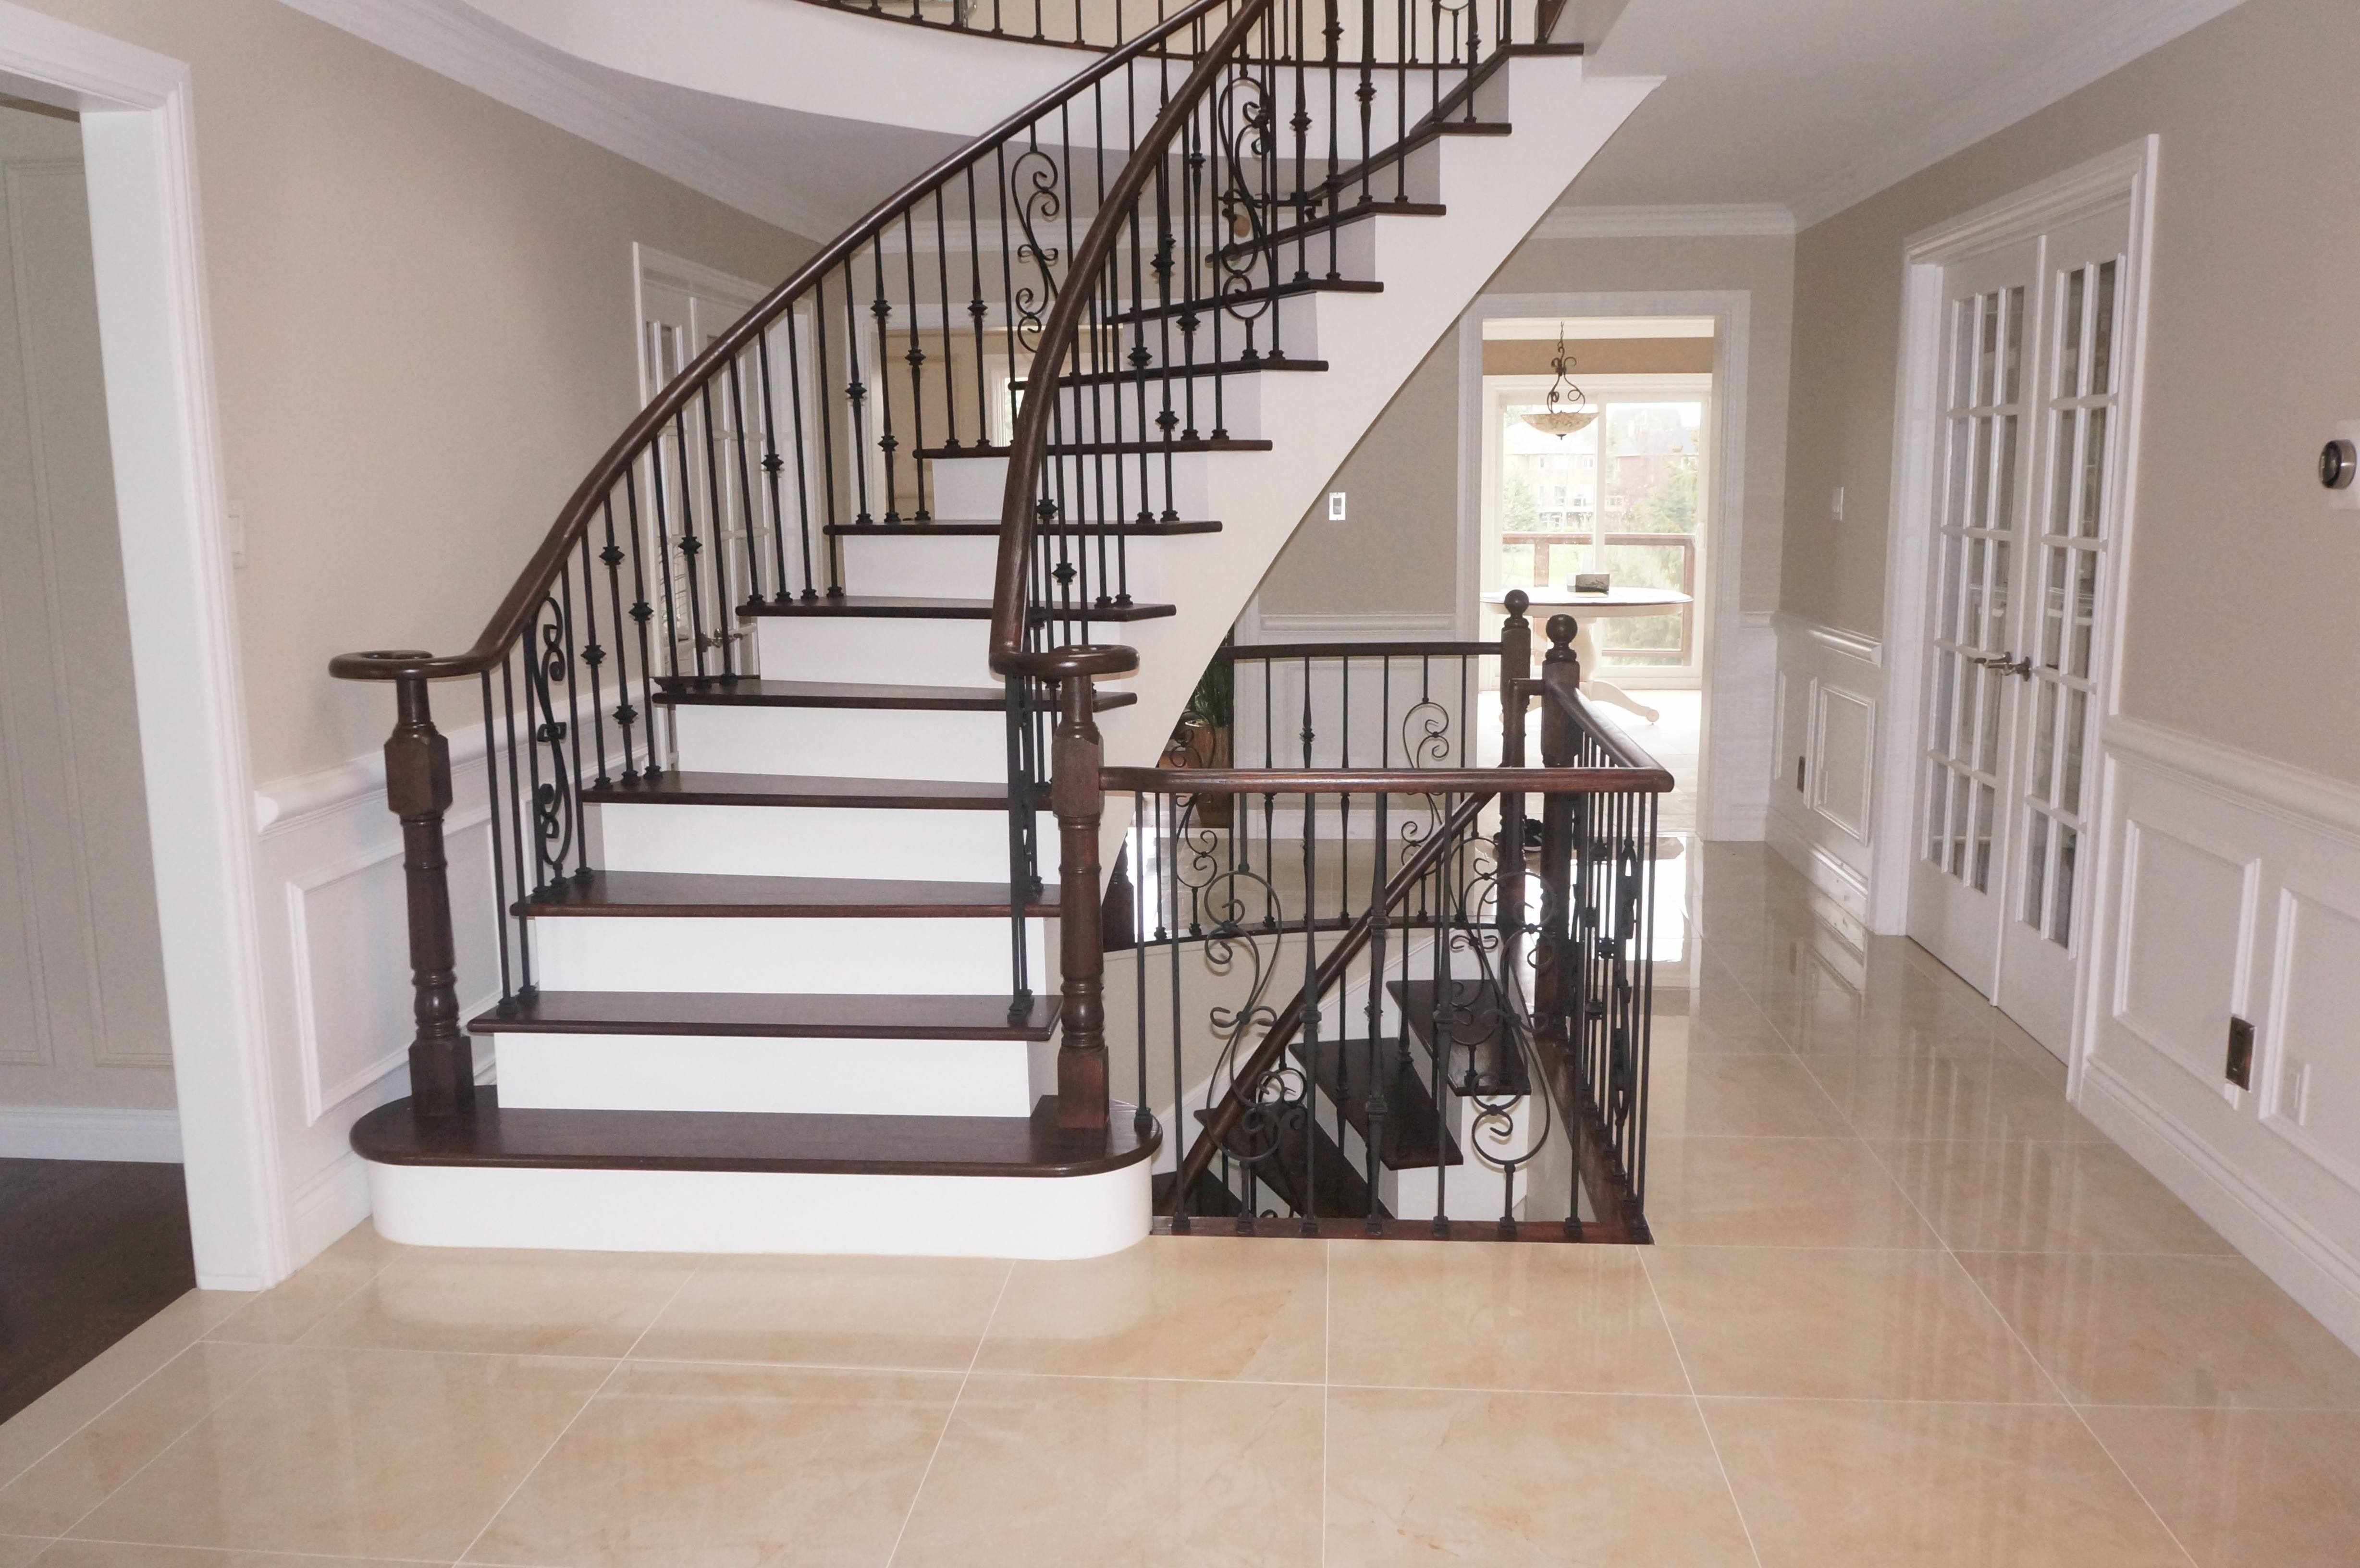 ideas stair of design put for decoration flooring treads stairs floors laminate on image